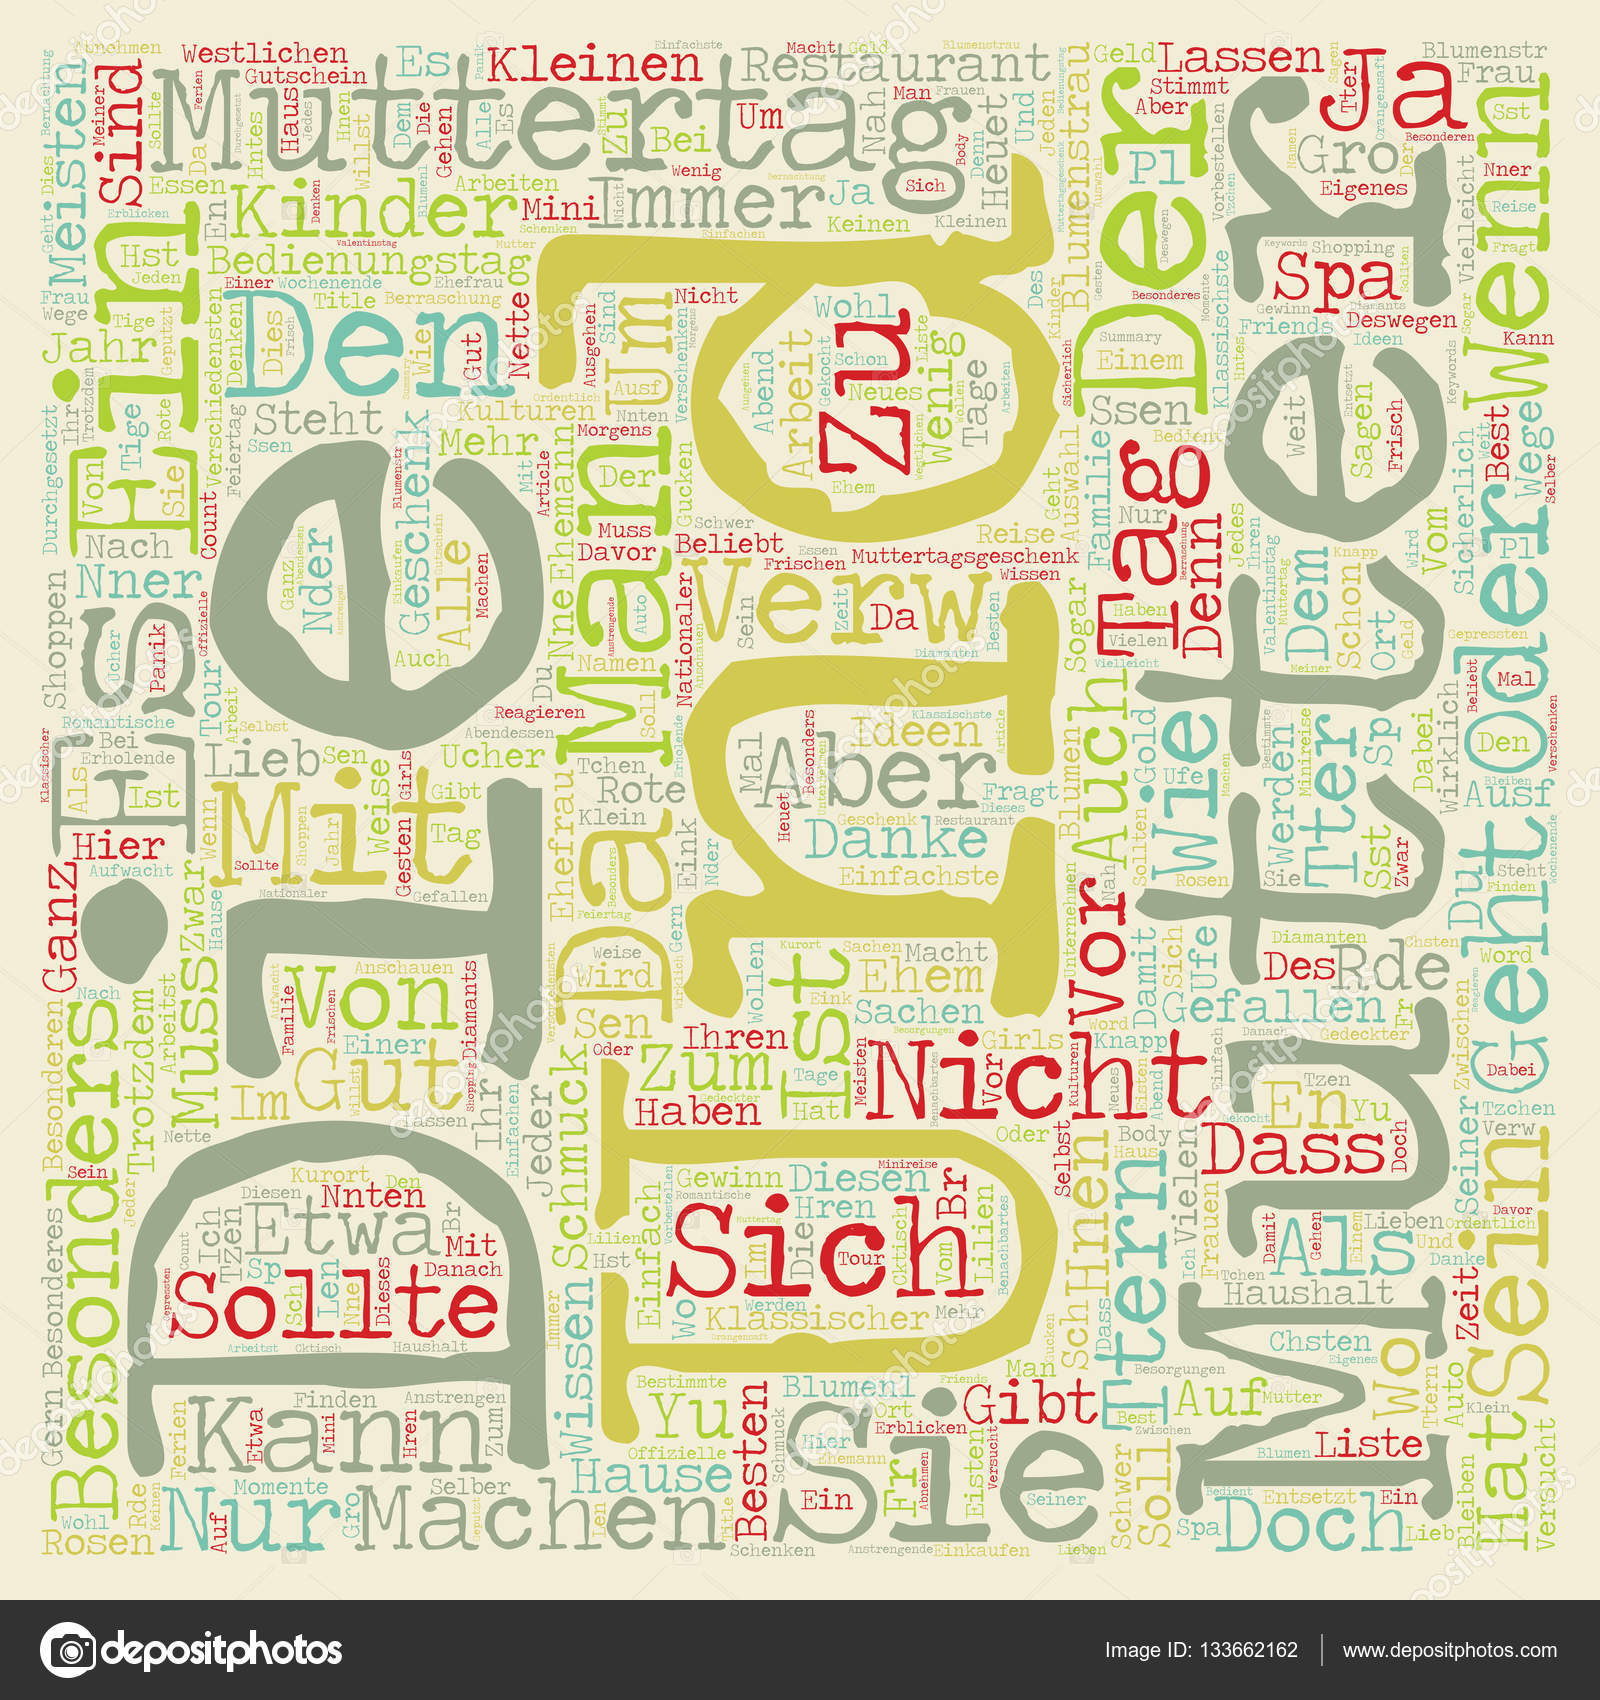 Ideen Muttertag muttertag geschenke ideen text background wordcloud concept stock